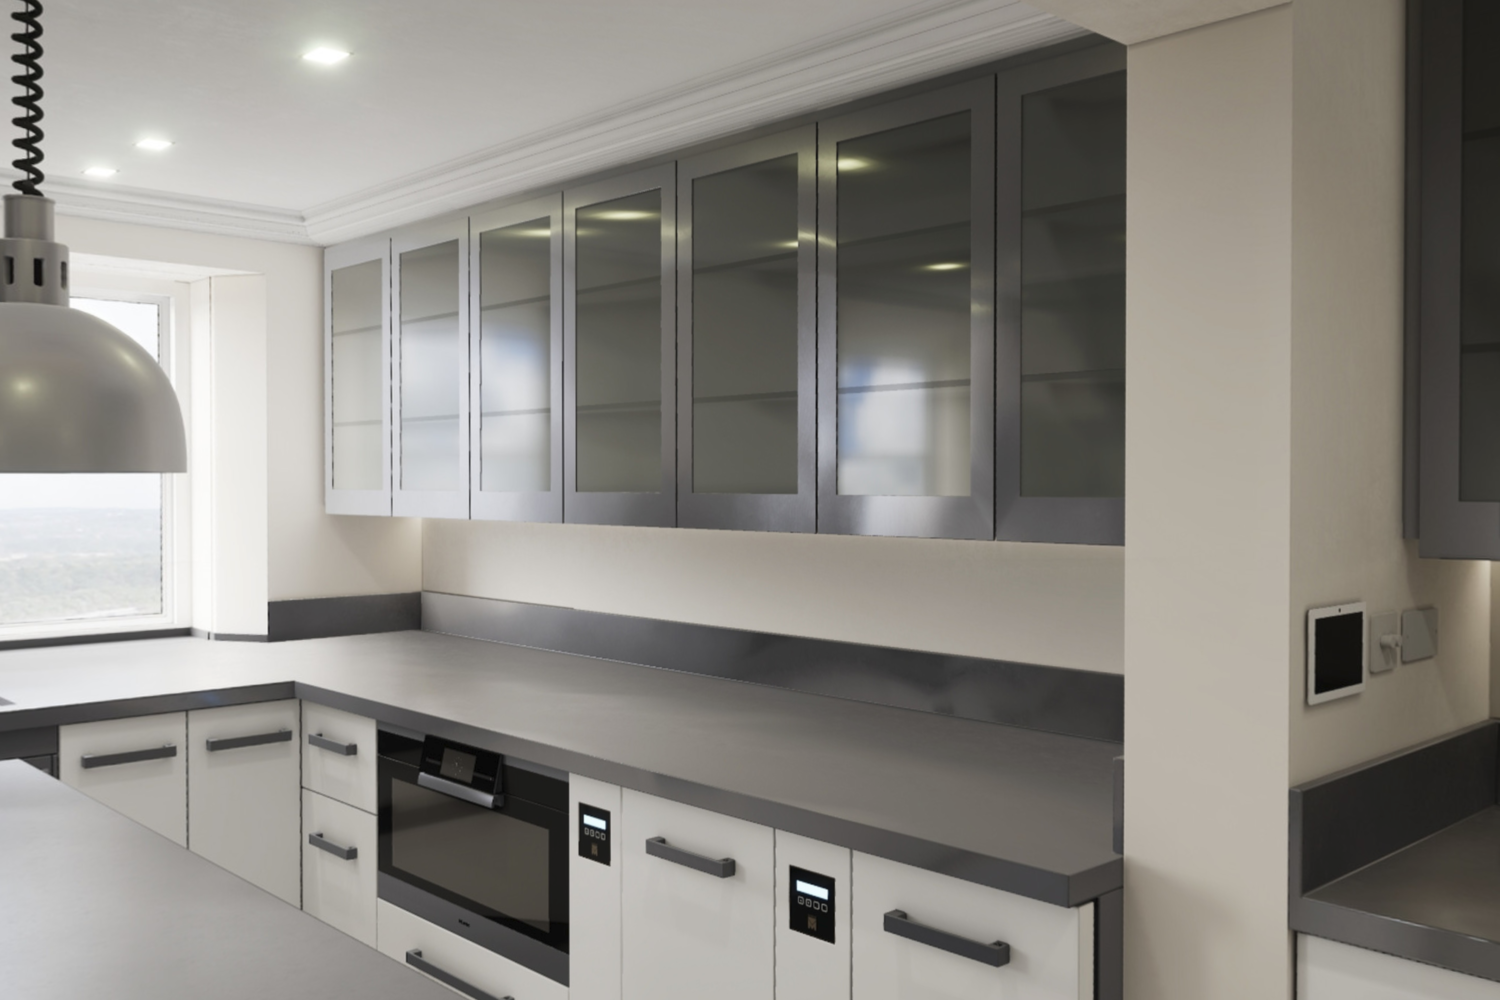 CGI image of Tregunter Kitchen showing the wall cabinet doors in glass and dark grey frame